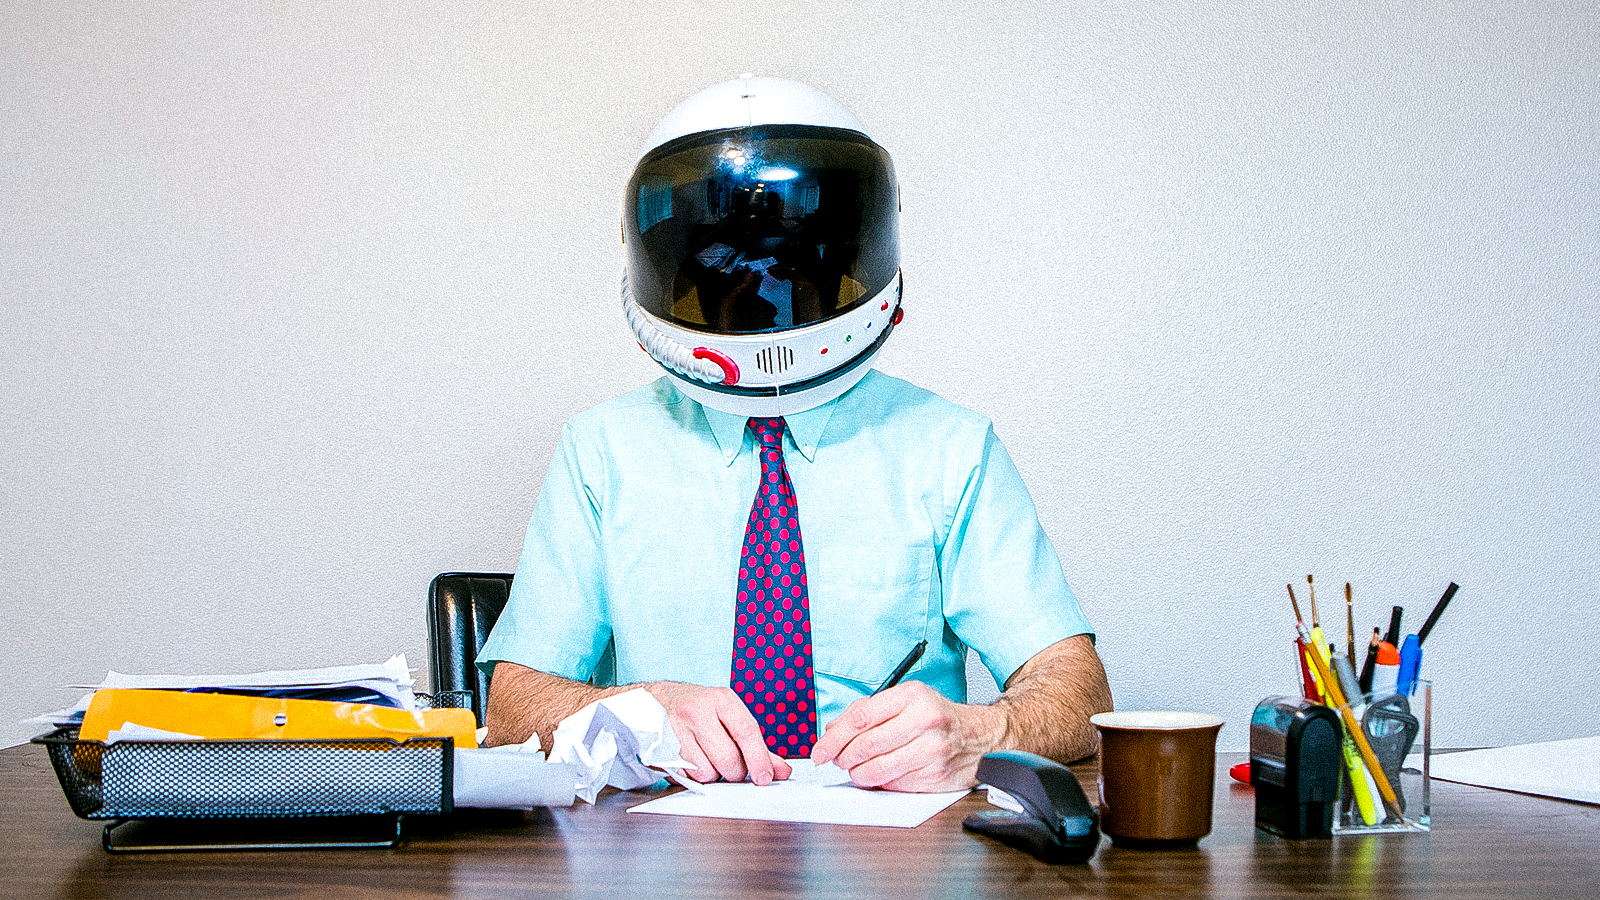 Why hiring average employees can be dangerous myjob.news